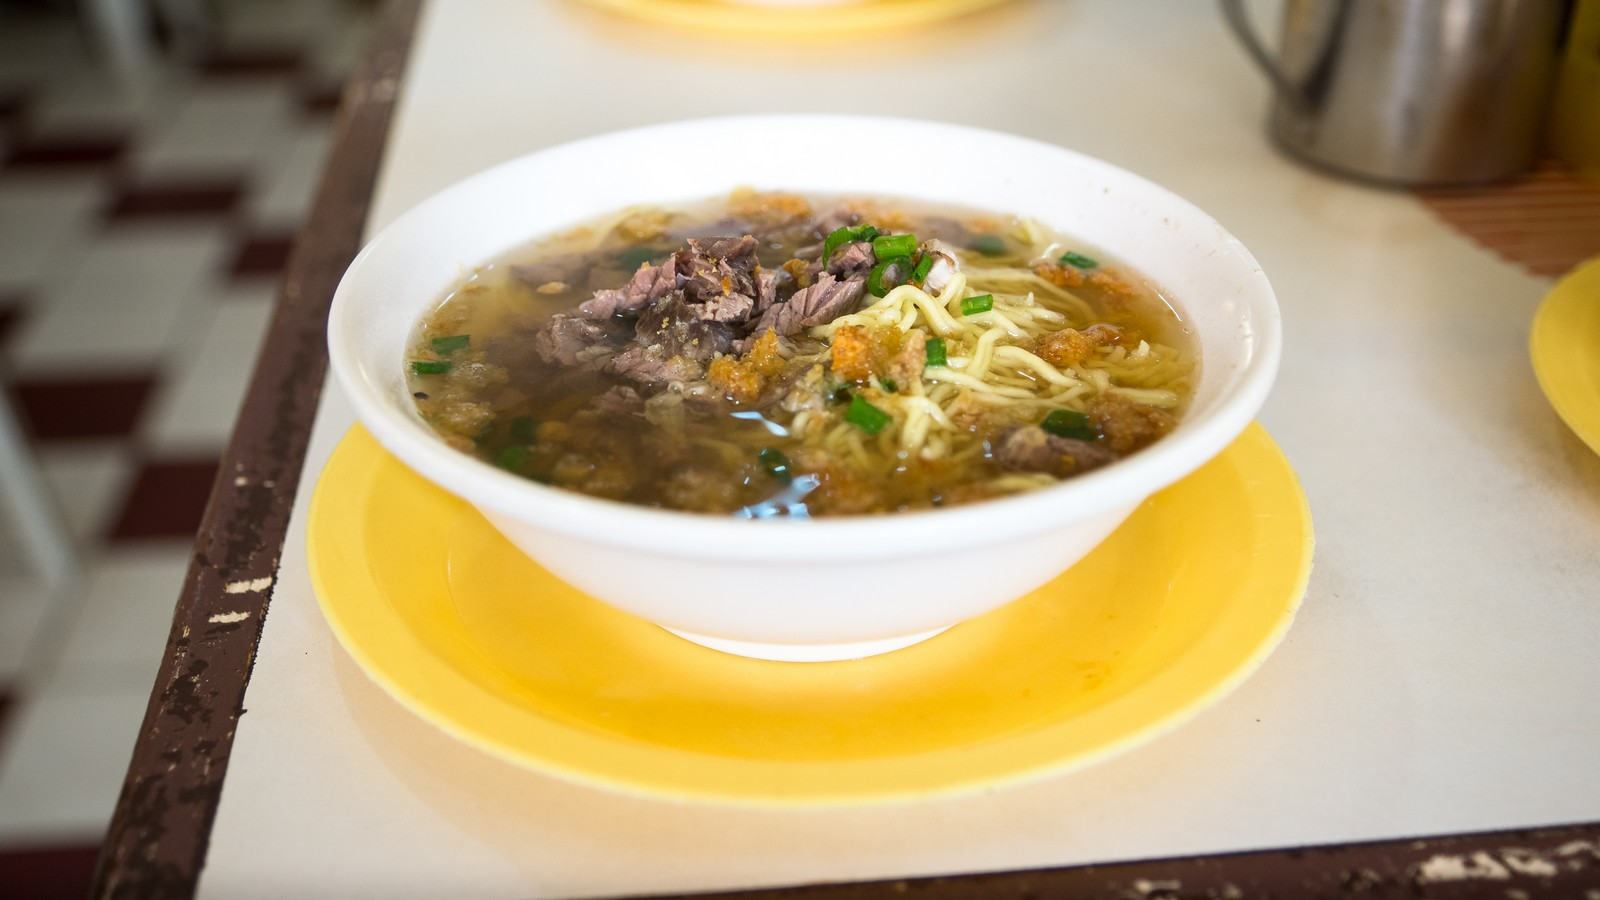 La paz batchoy, a local noodle soup dish in Iloilo